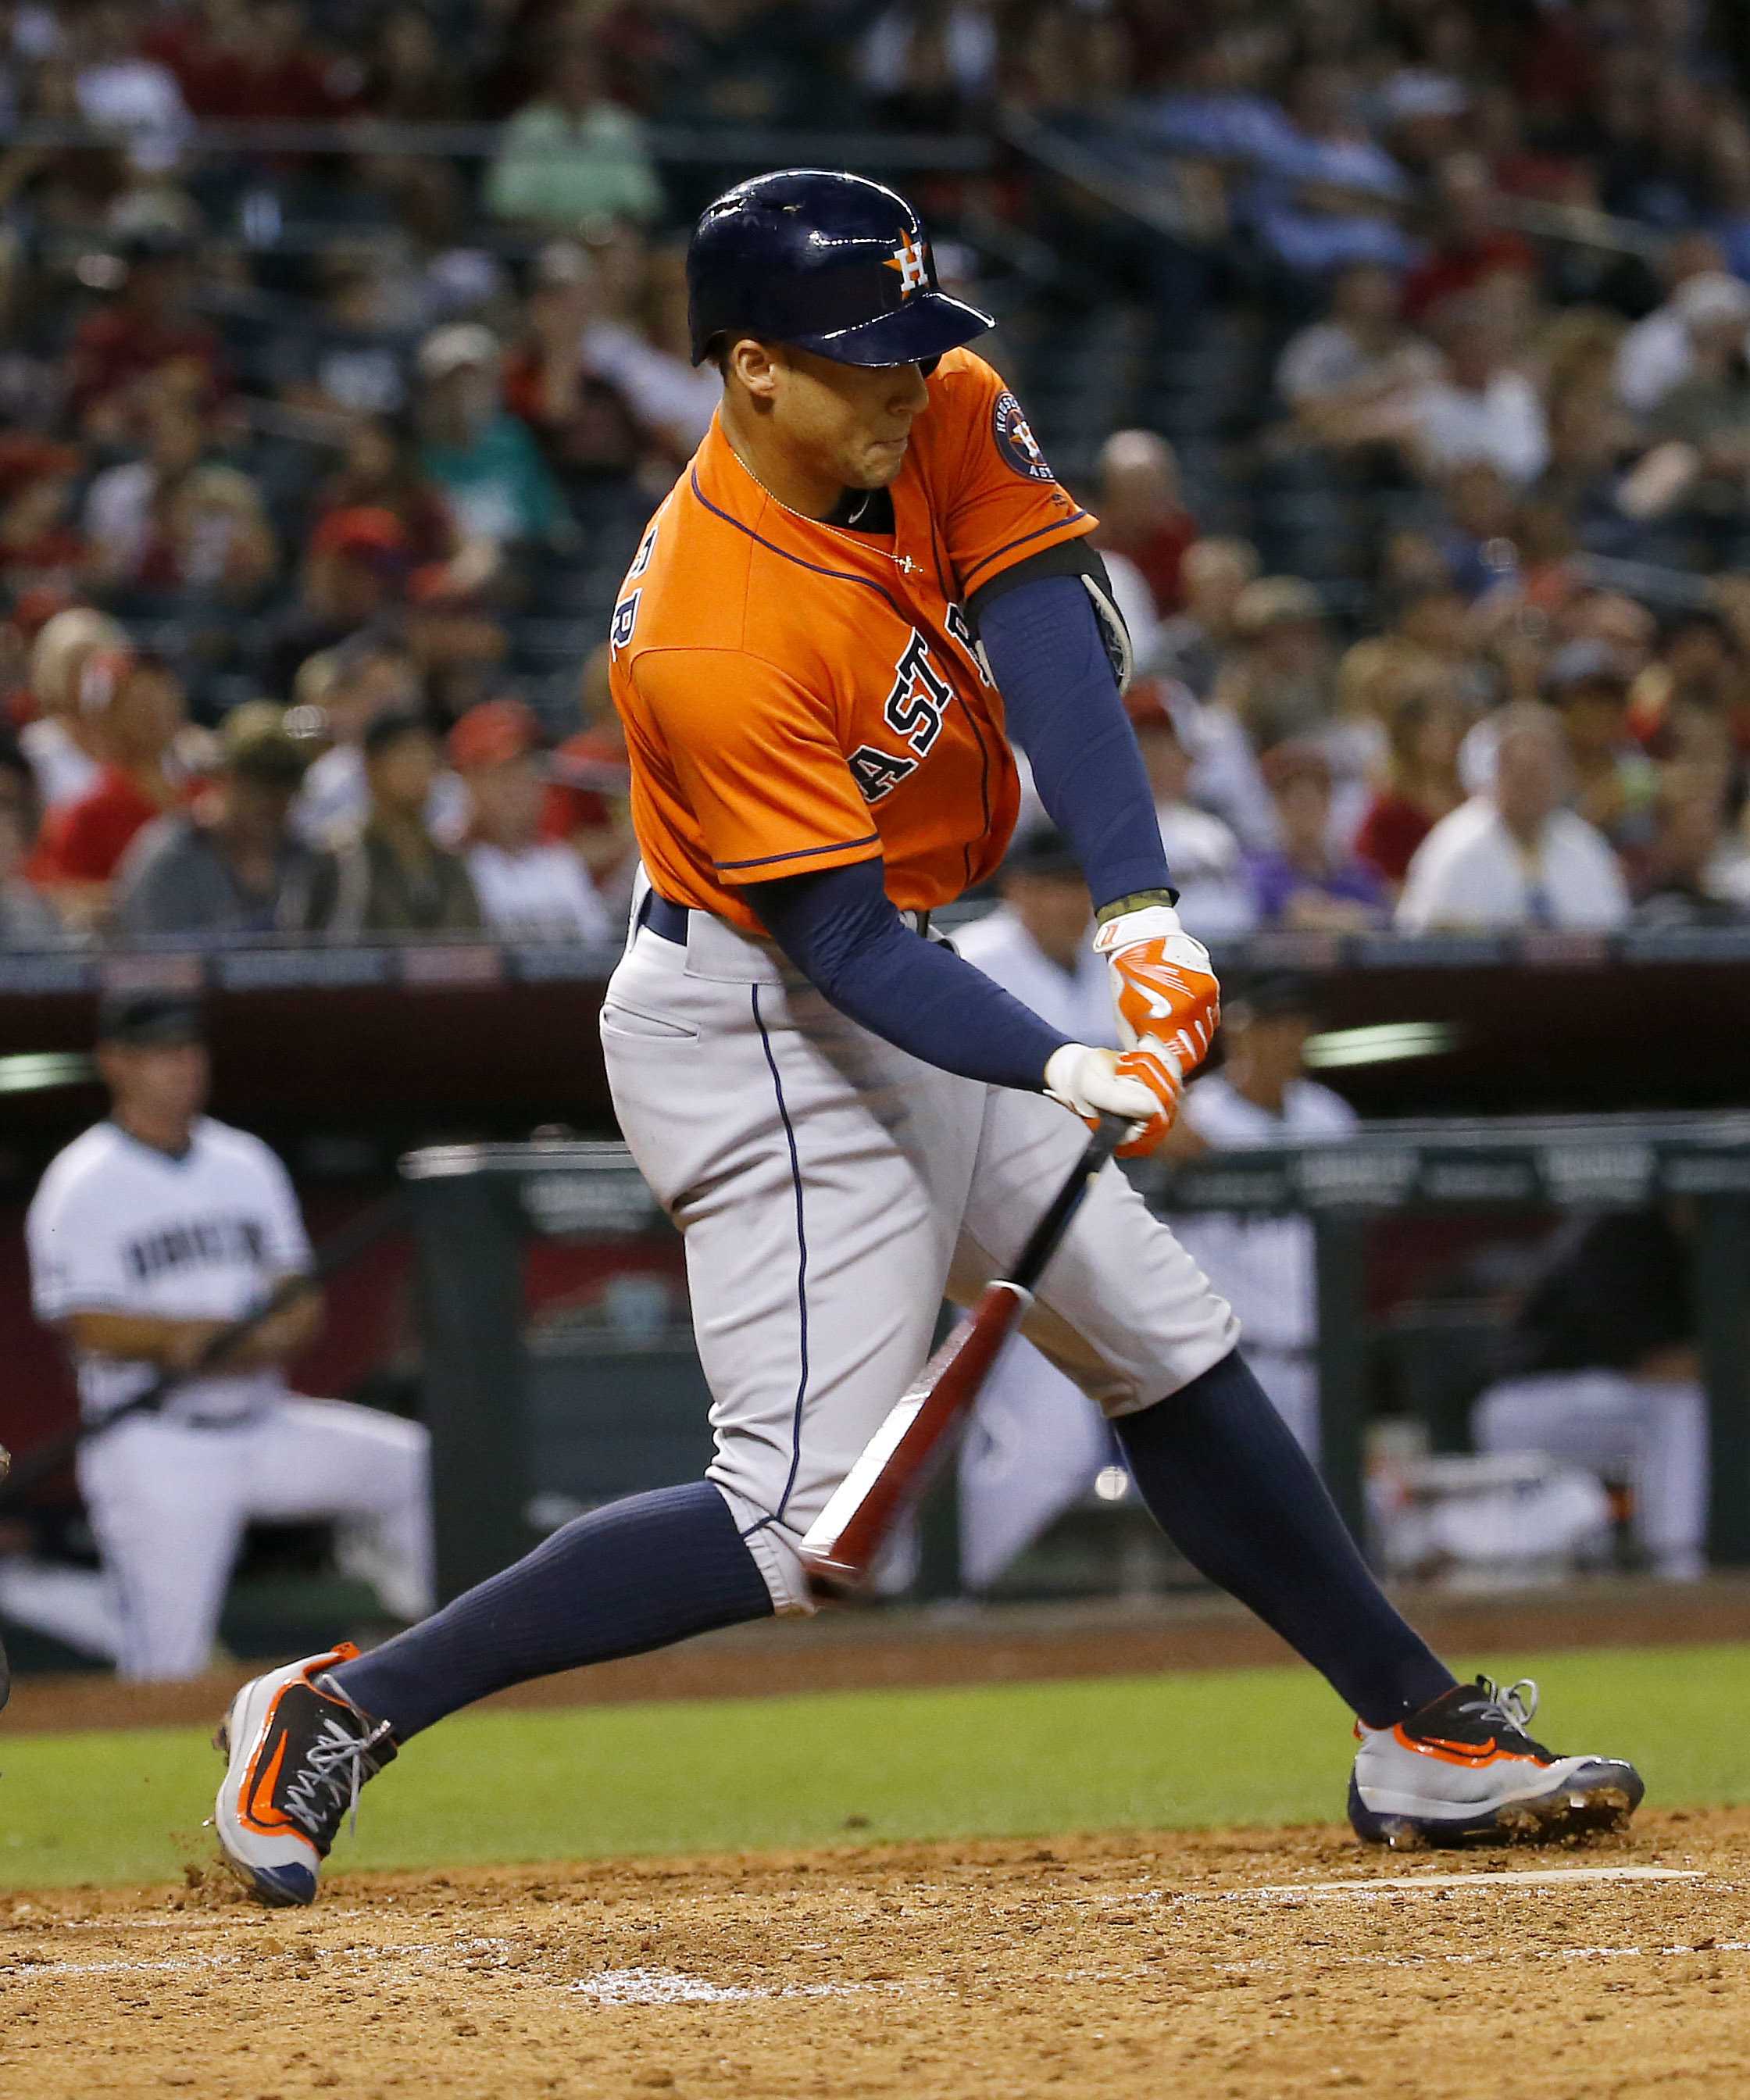 Houston Astros' George Springer connects for an RBI base hit against the Arizona Diamondbacks during the fourth inning of a baseball game, Tuesday, May 31, 2016, in Phoenix. (AP Photo/Matt York)